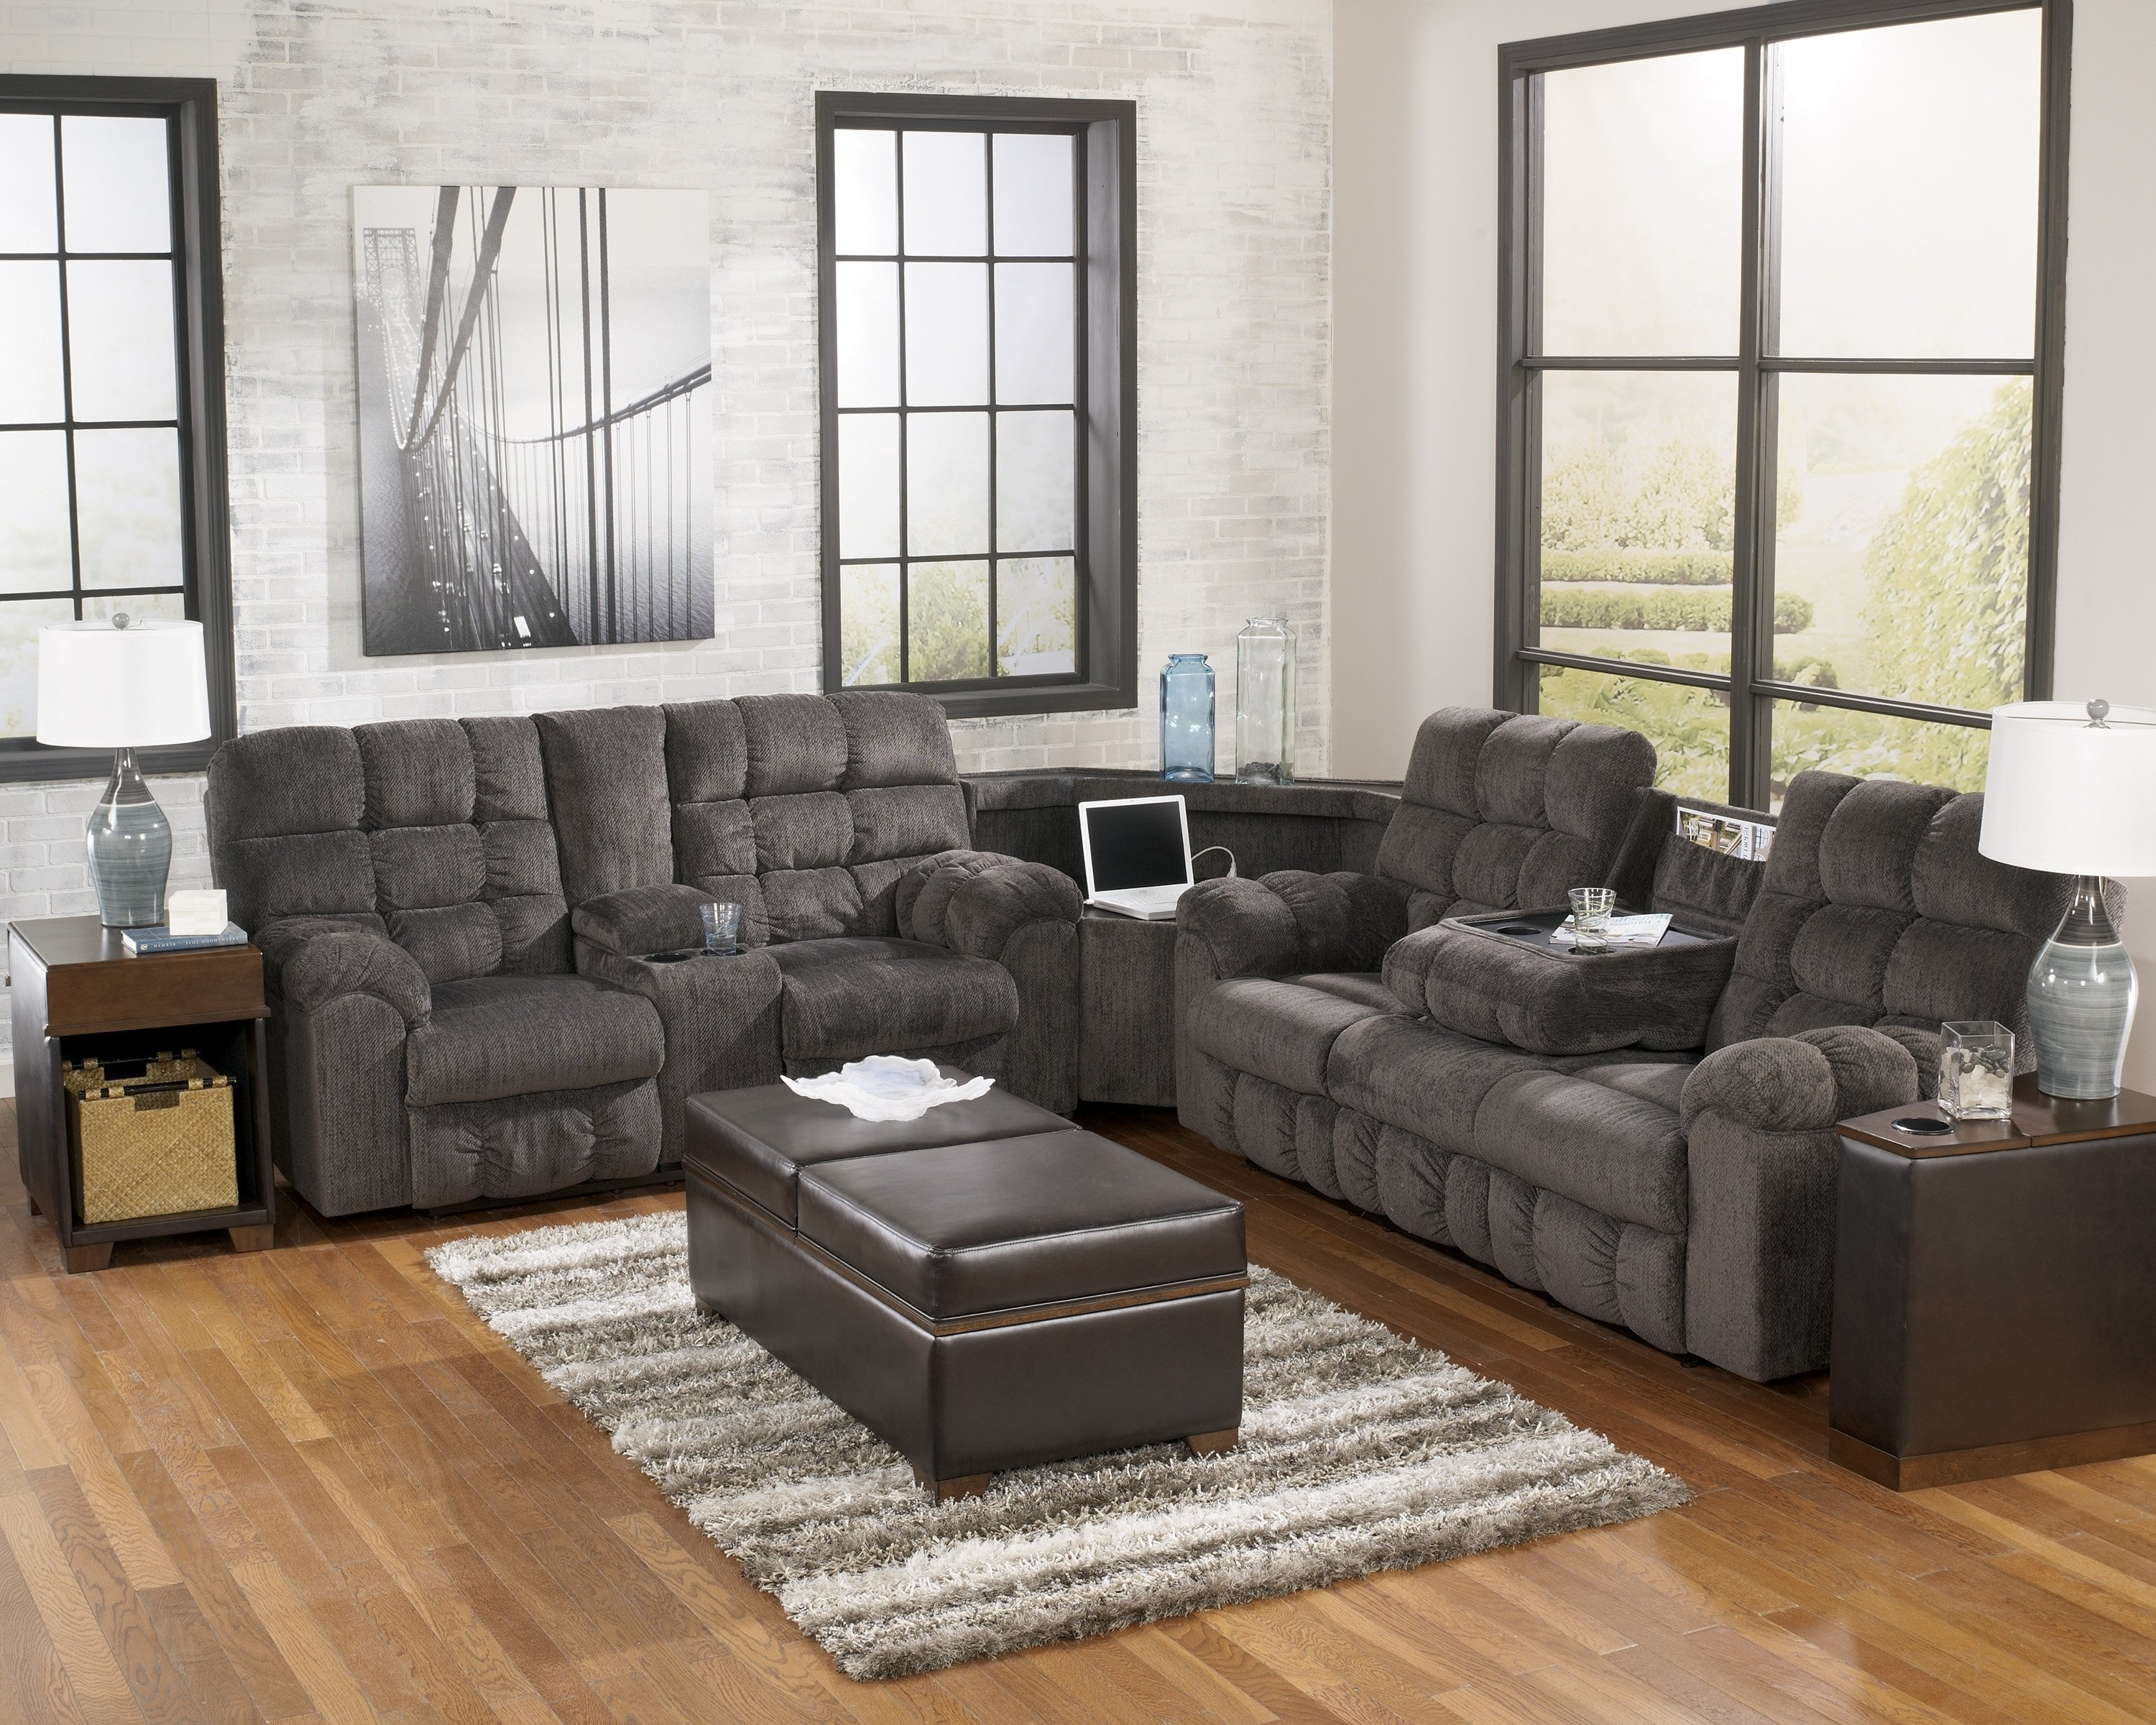 2018 Sofas Center Sectional Sofas Ashley Furniture Excellent Faux For Pertaining To Sectional Sofas At Ashley Furniture (View 8 of 15)